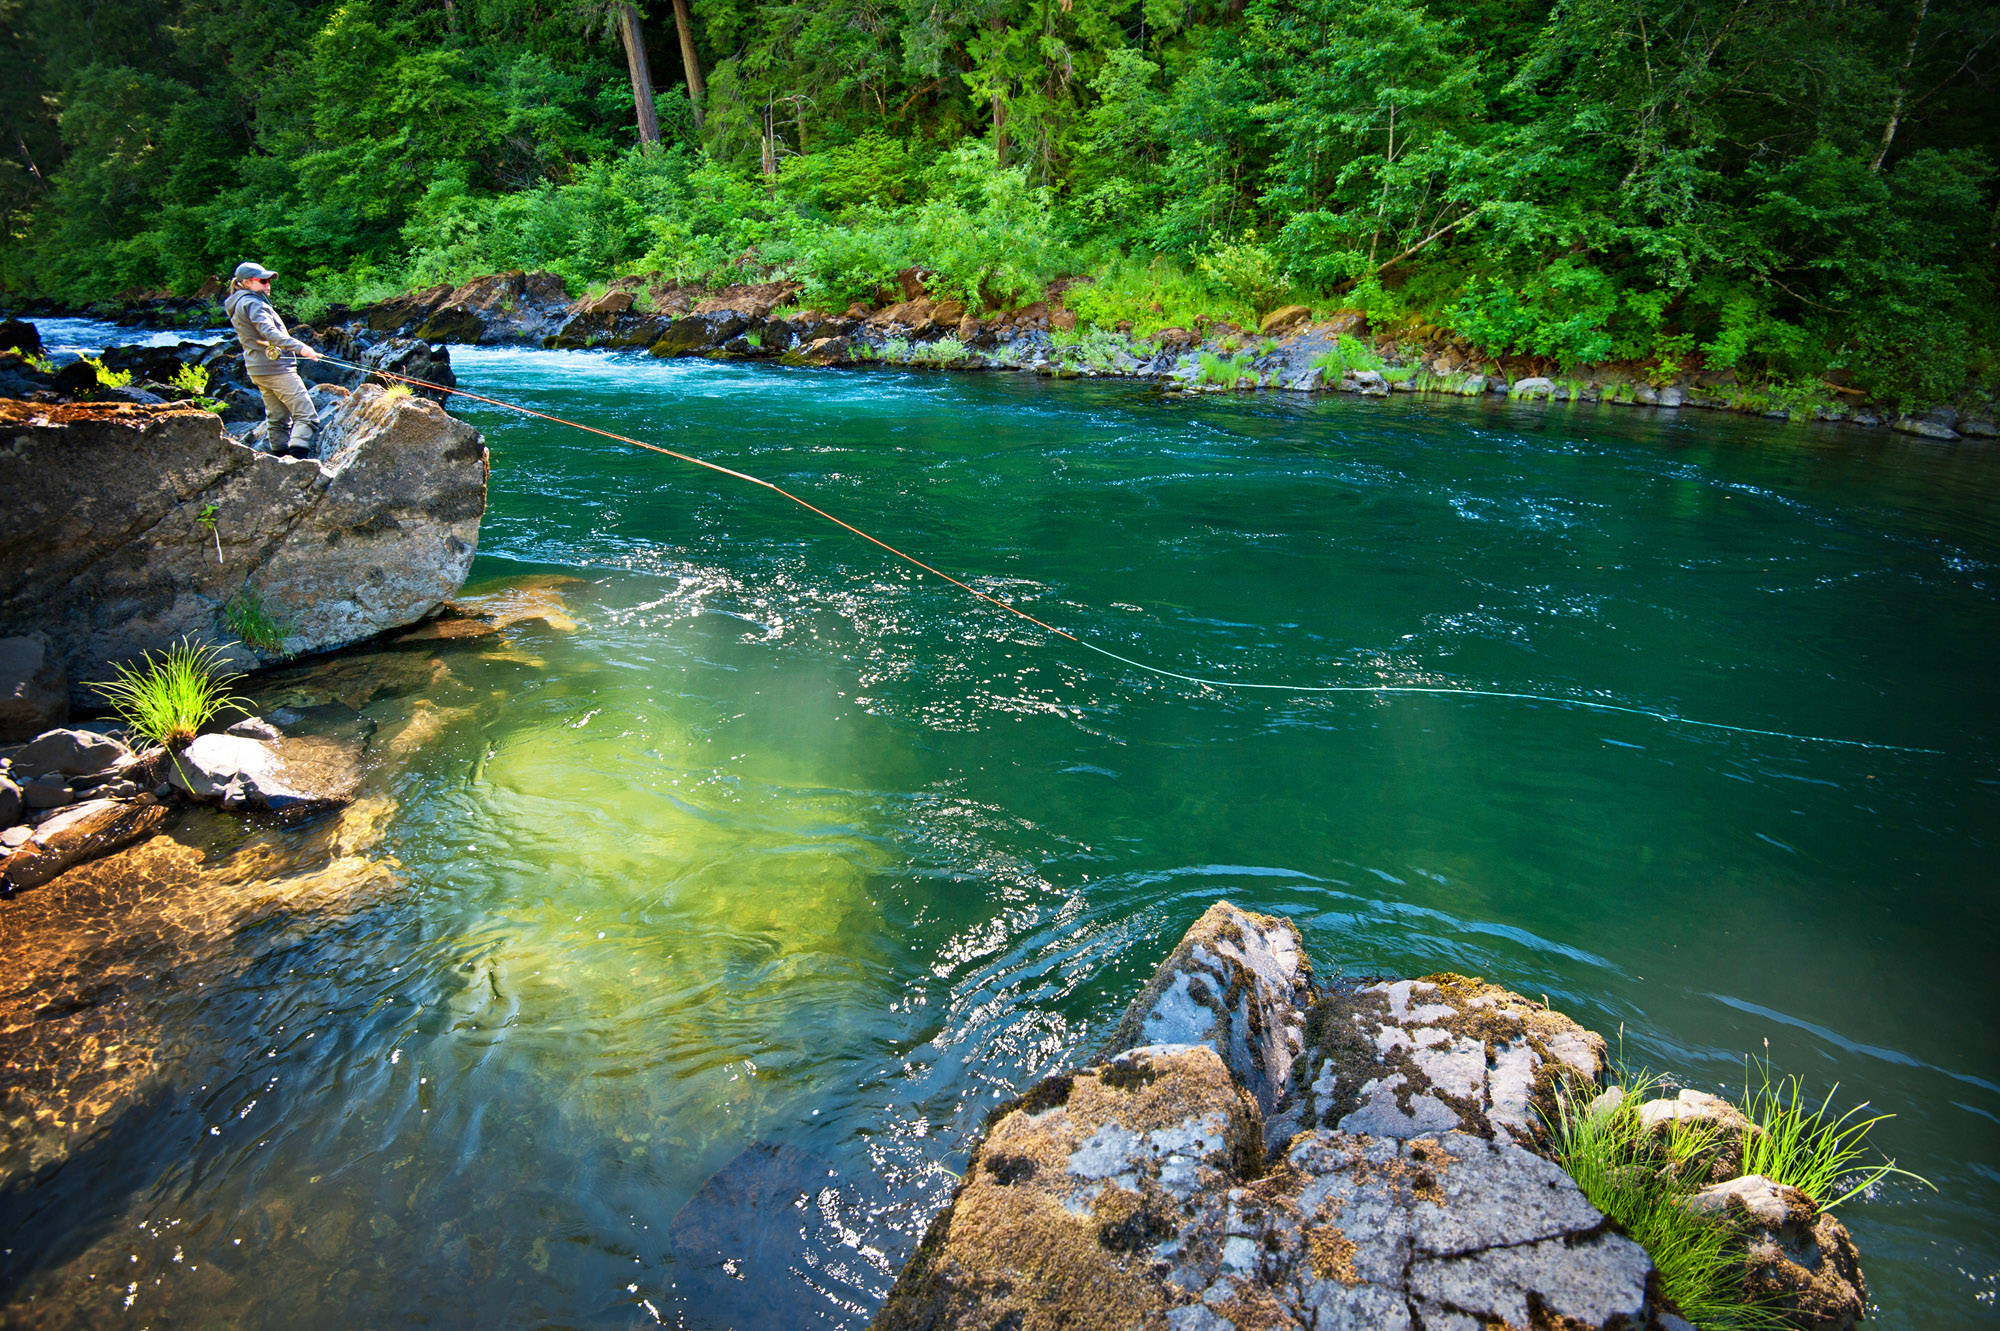 Saturation slider much? Nah, not on this one. If you've been lucky enough to find yourself on the banks of Oregon's North Umpqua River, you know the colors in this image are all too real. Photo: Arian Stevens. Angler: Jesse Ball.